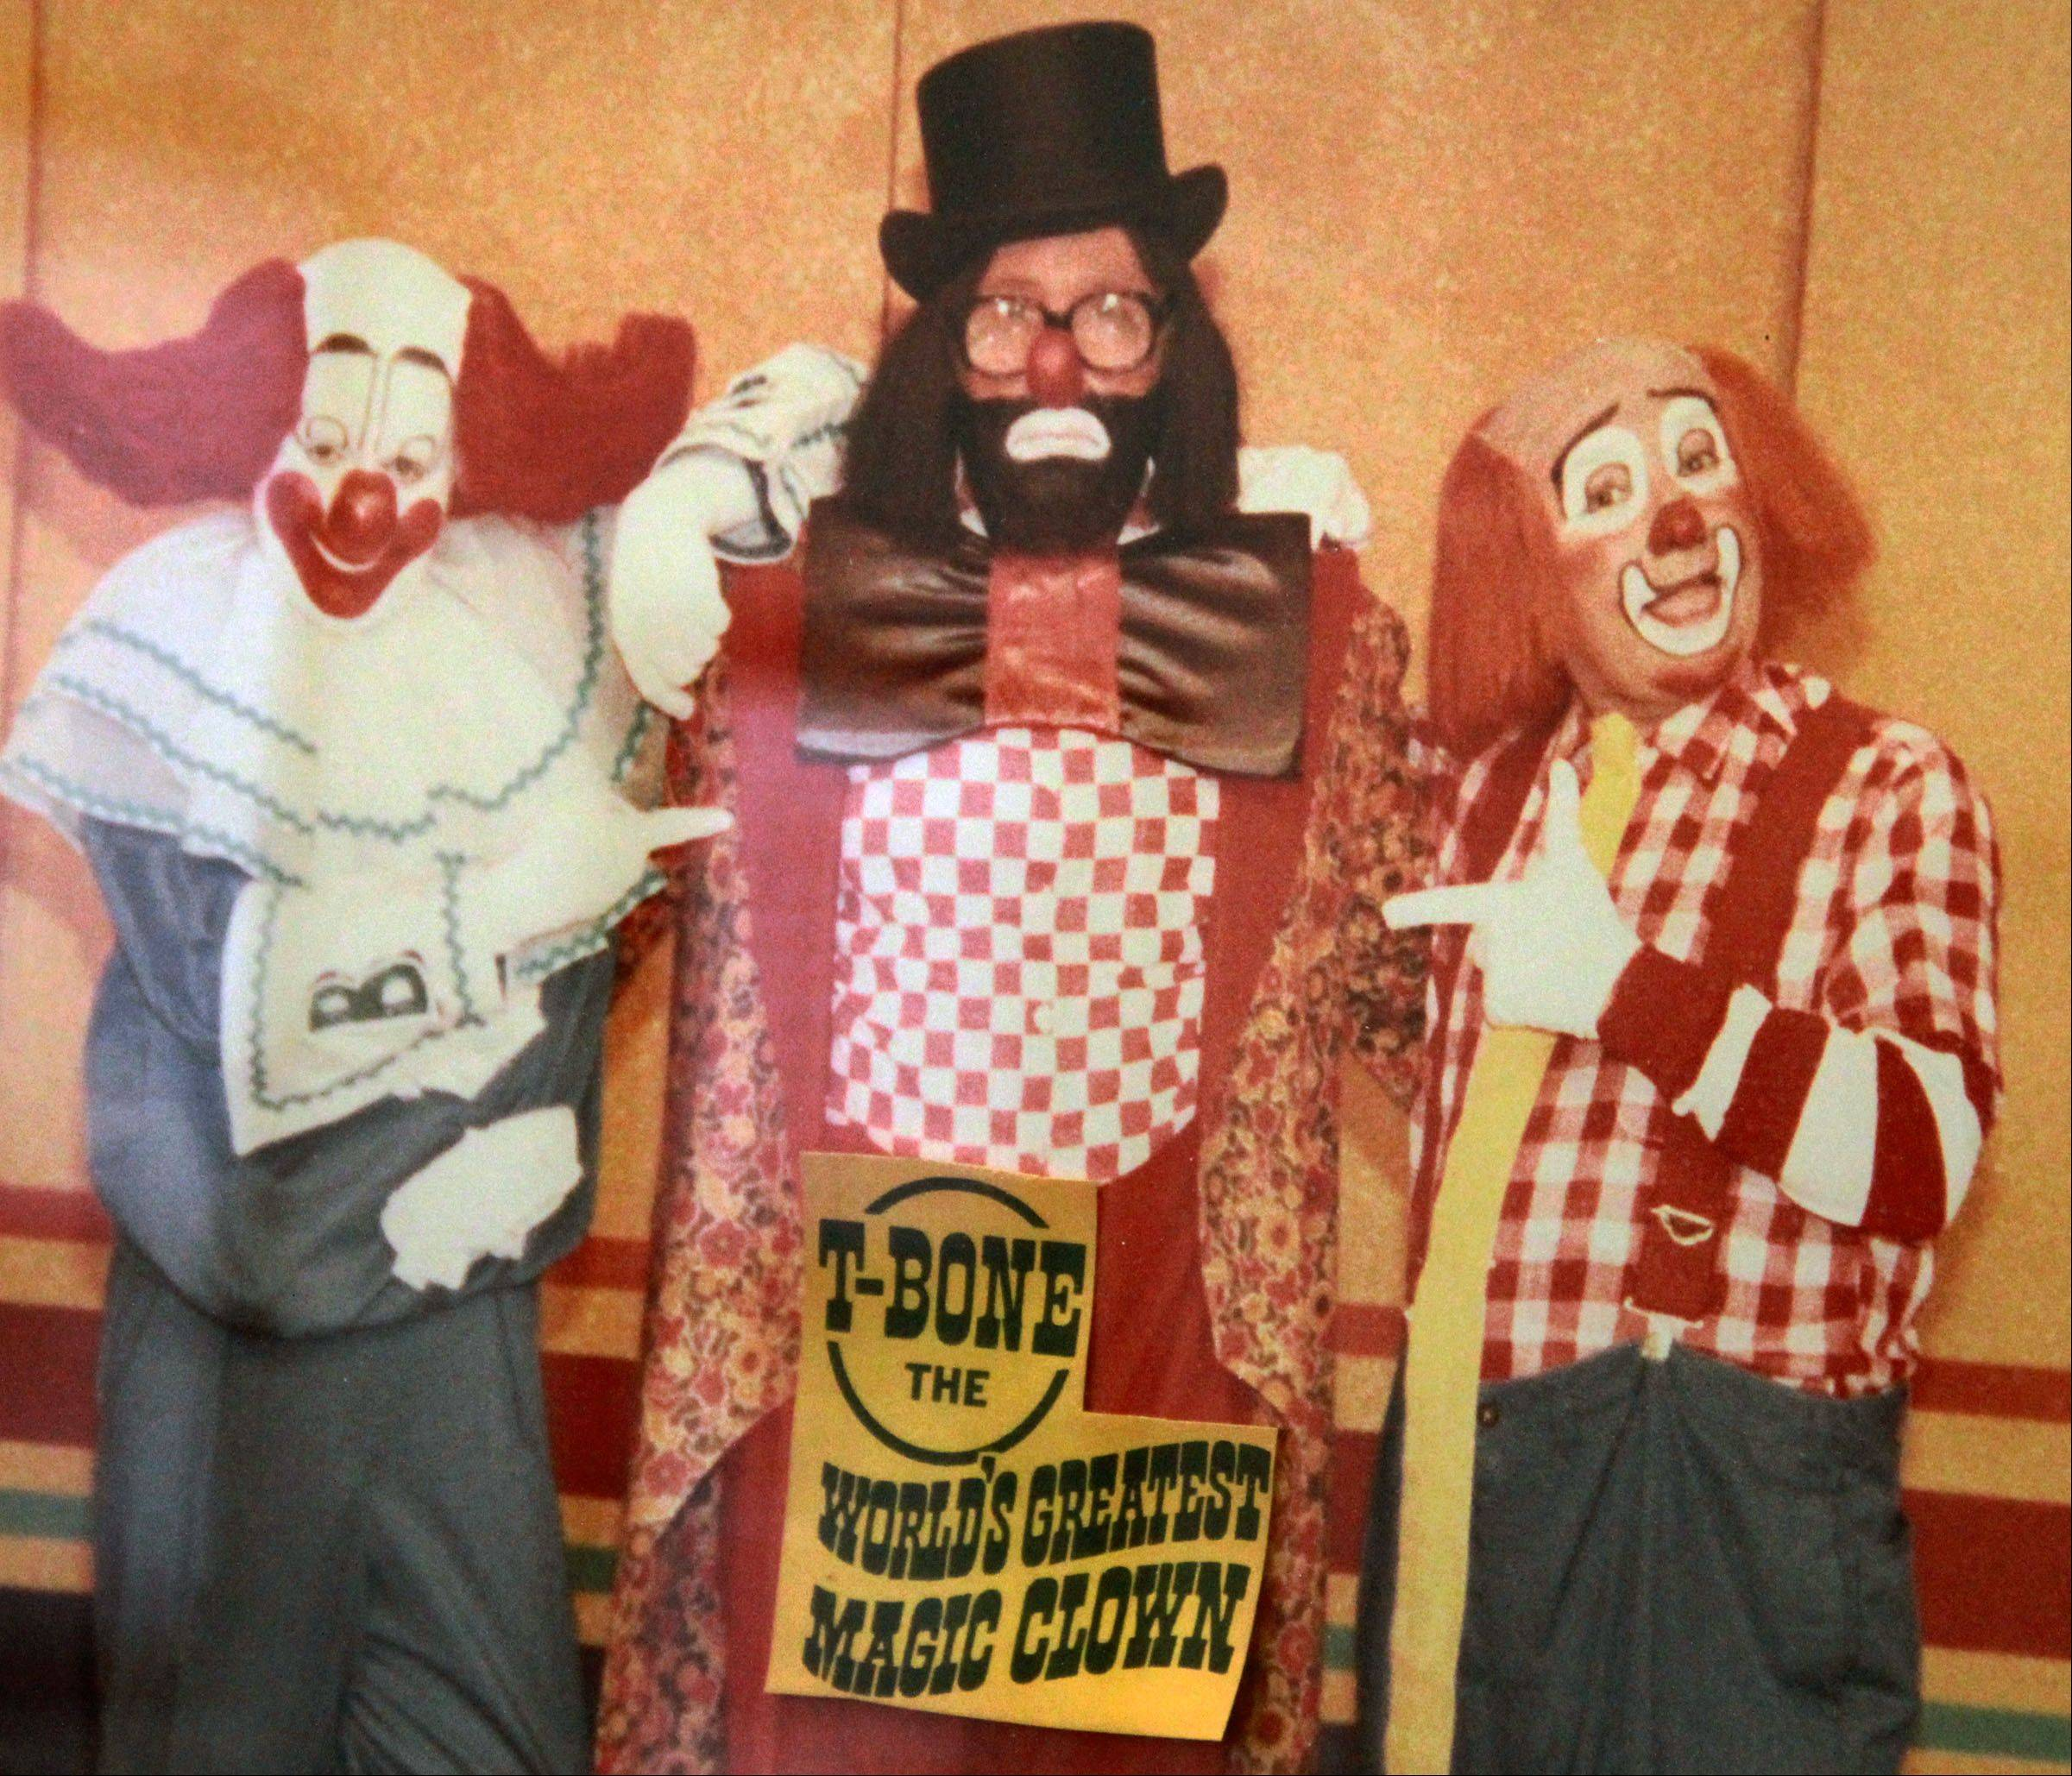 Don Theobald, the magician clown, is with Bozo the clown in 1960.